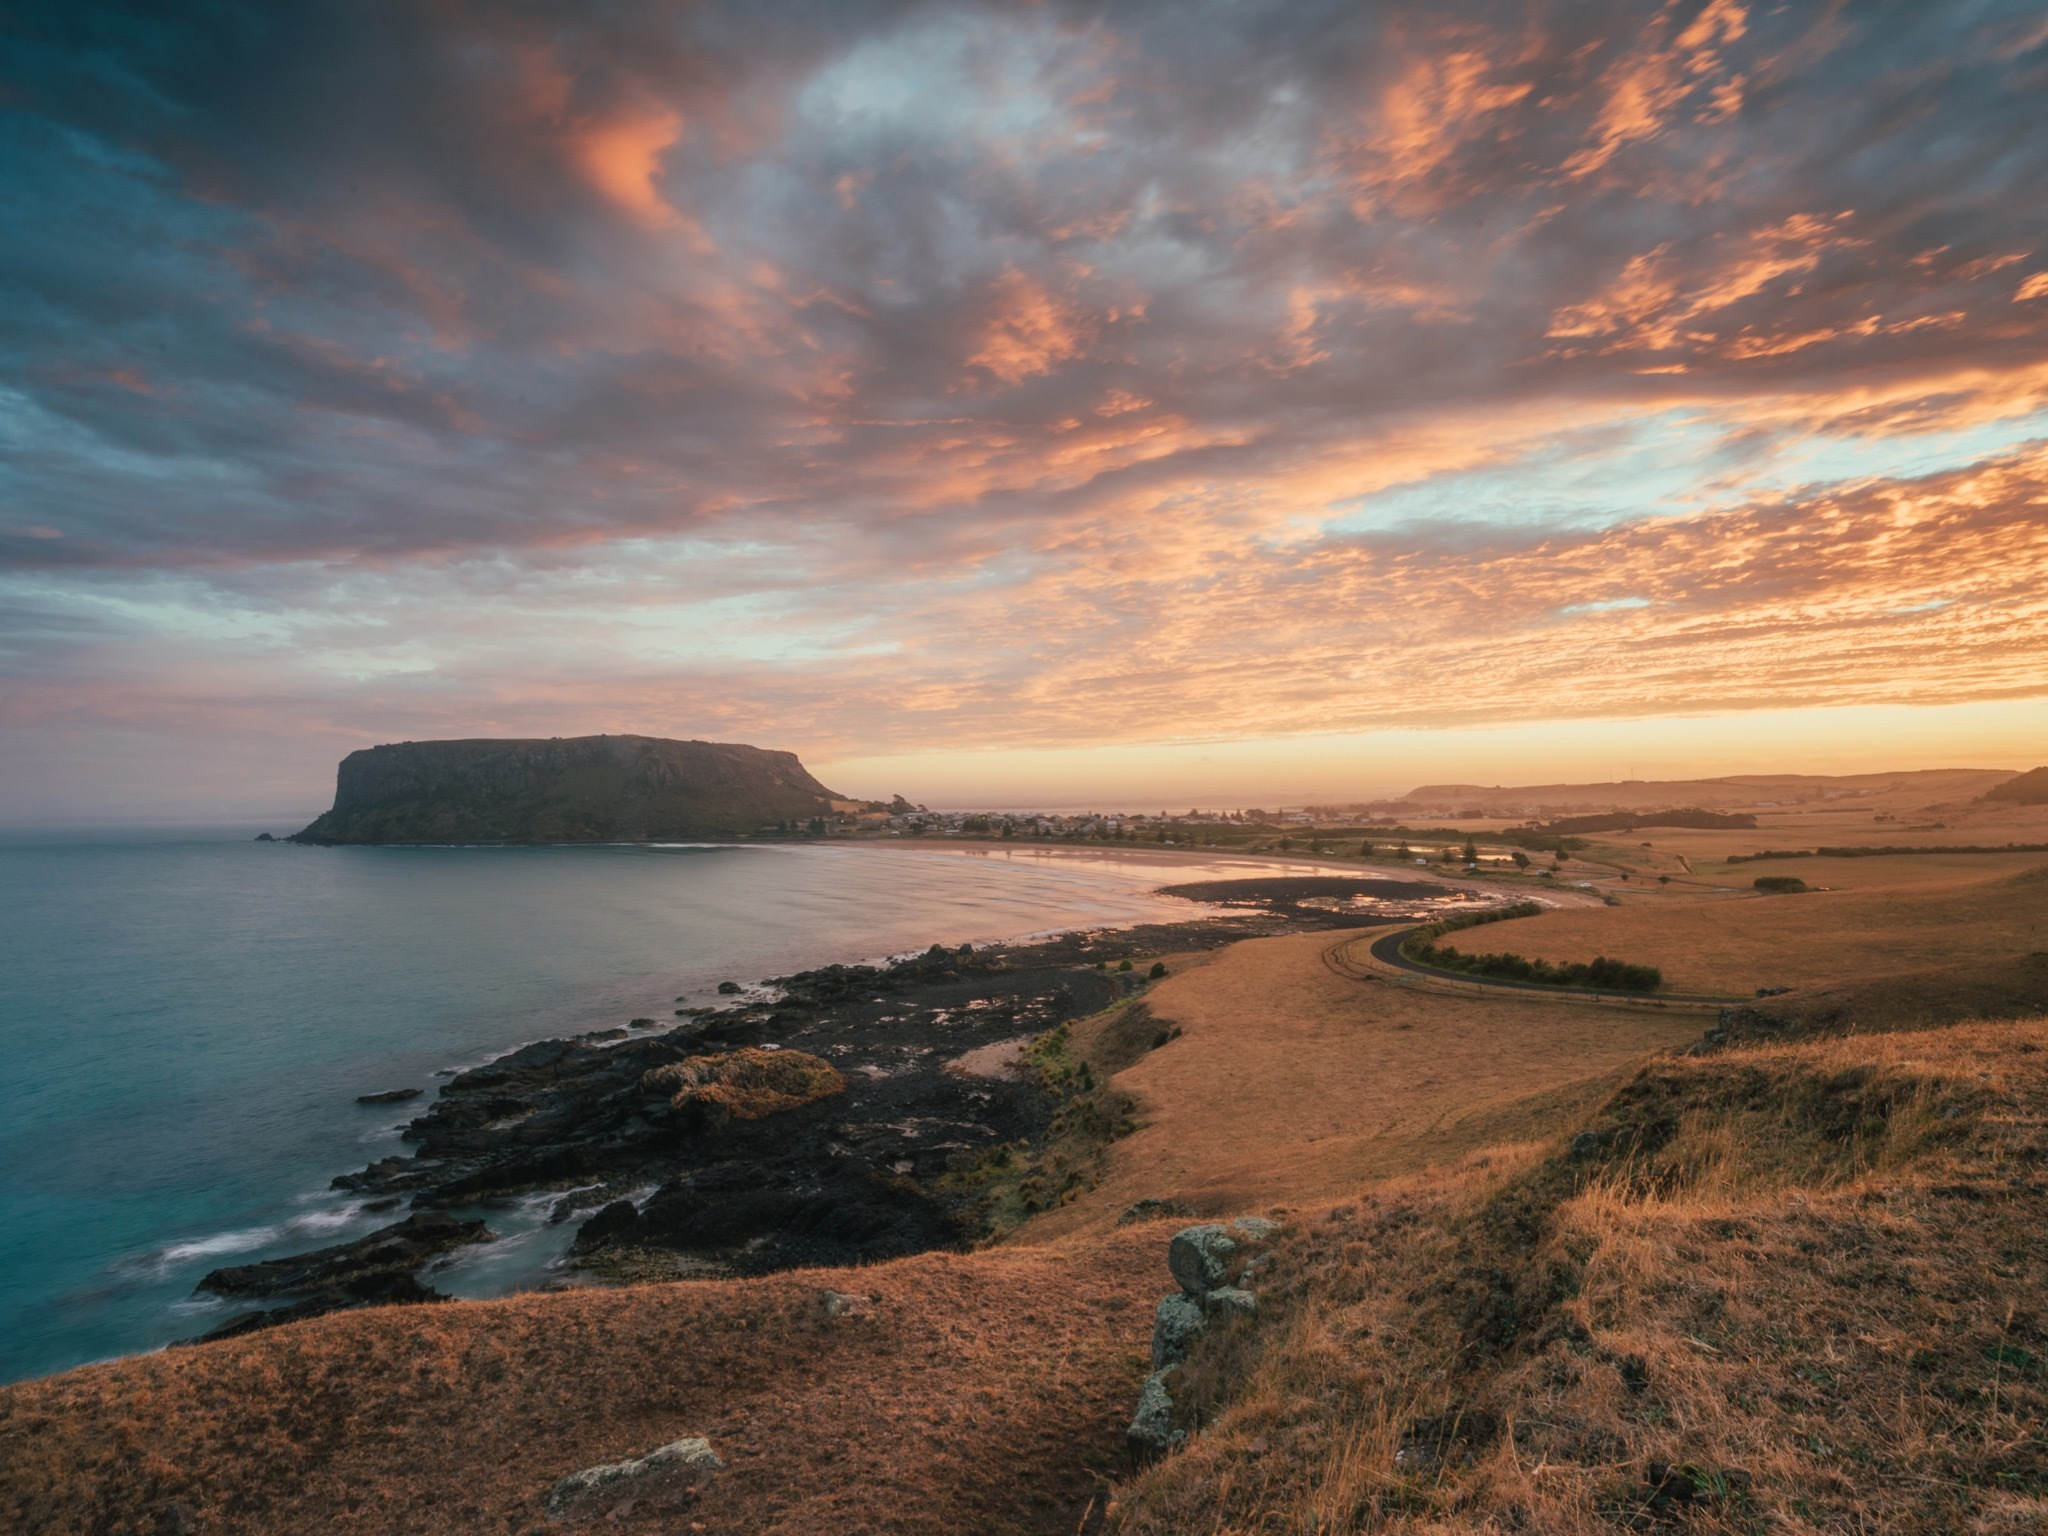 Time Out's guide to Tasmania's North West